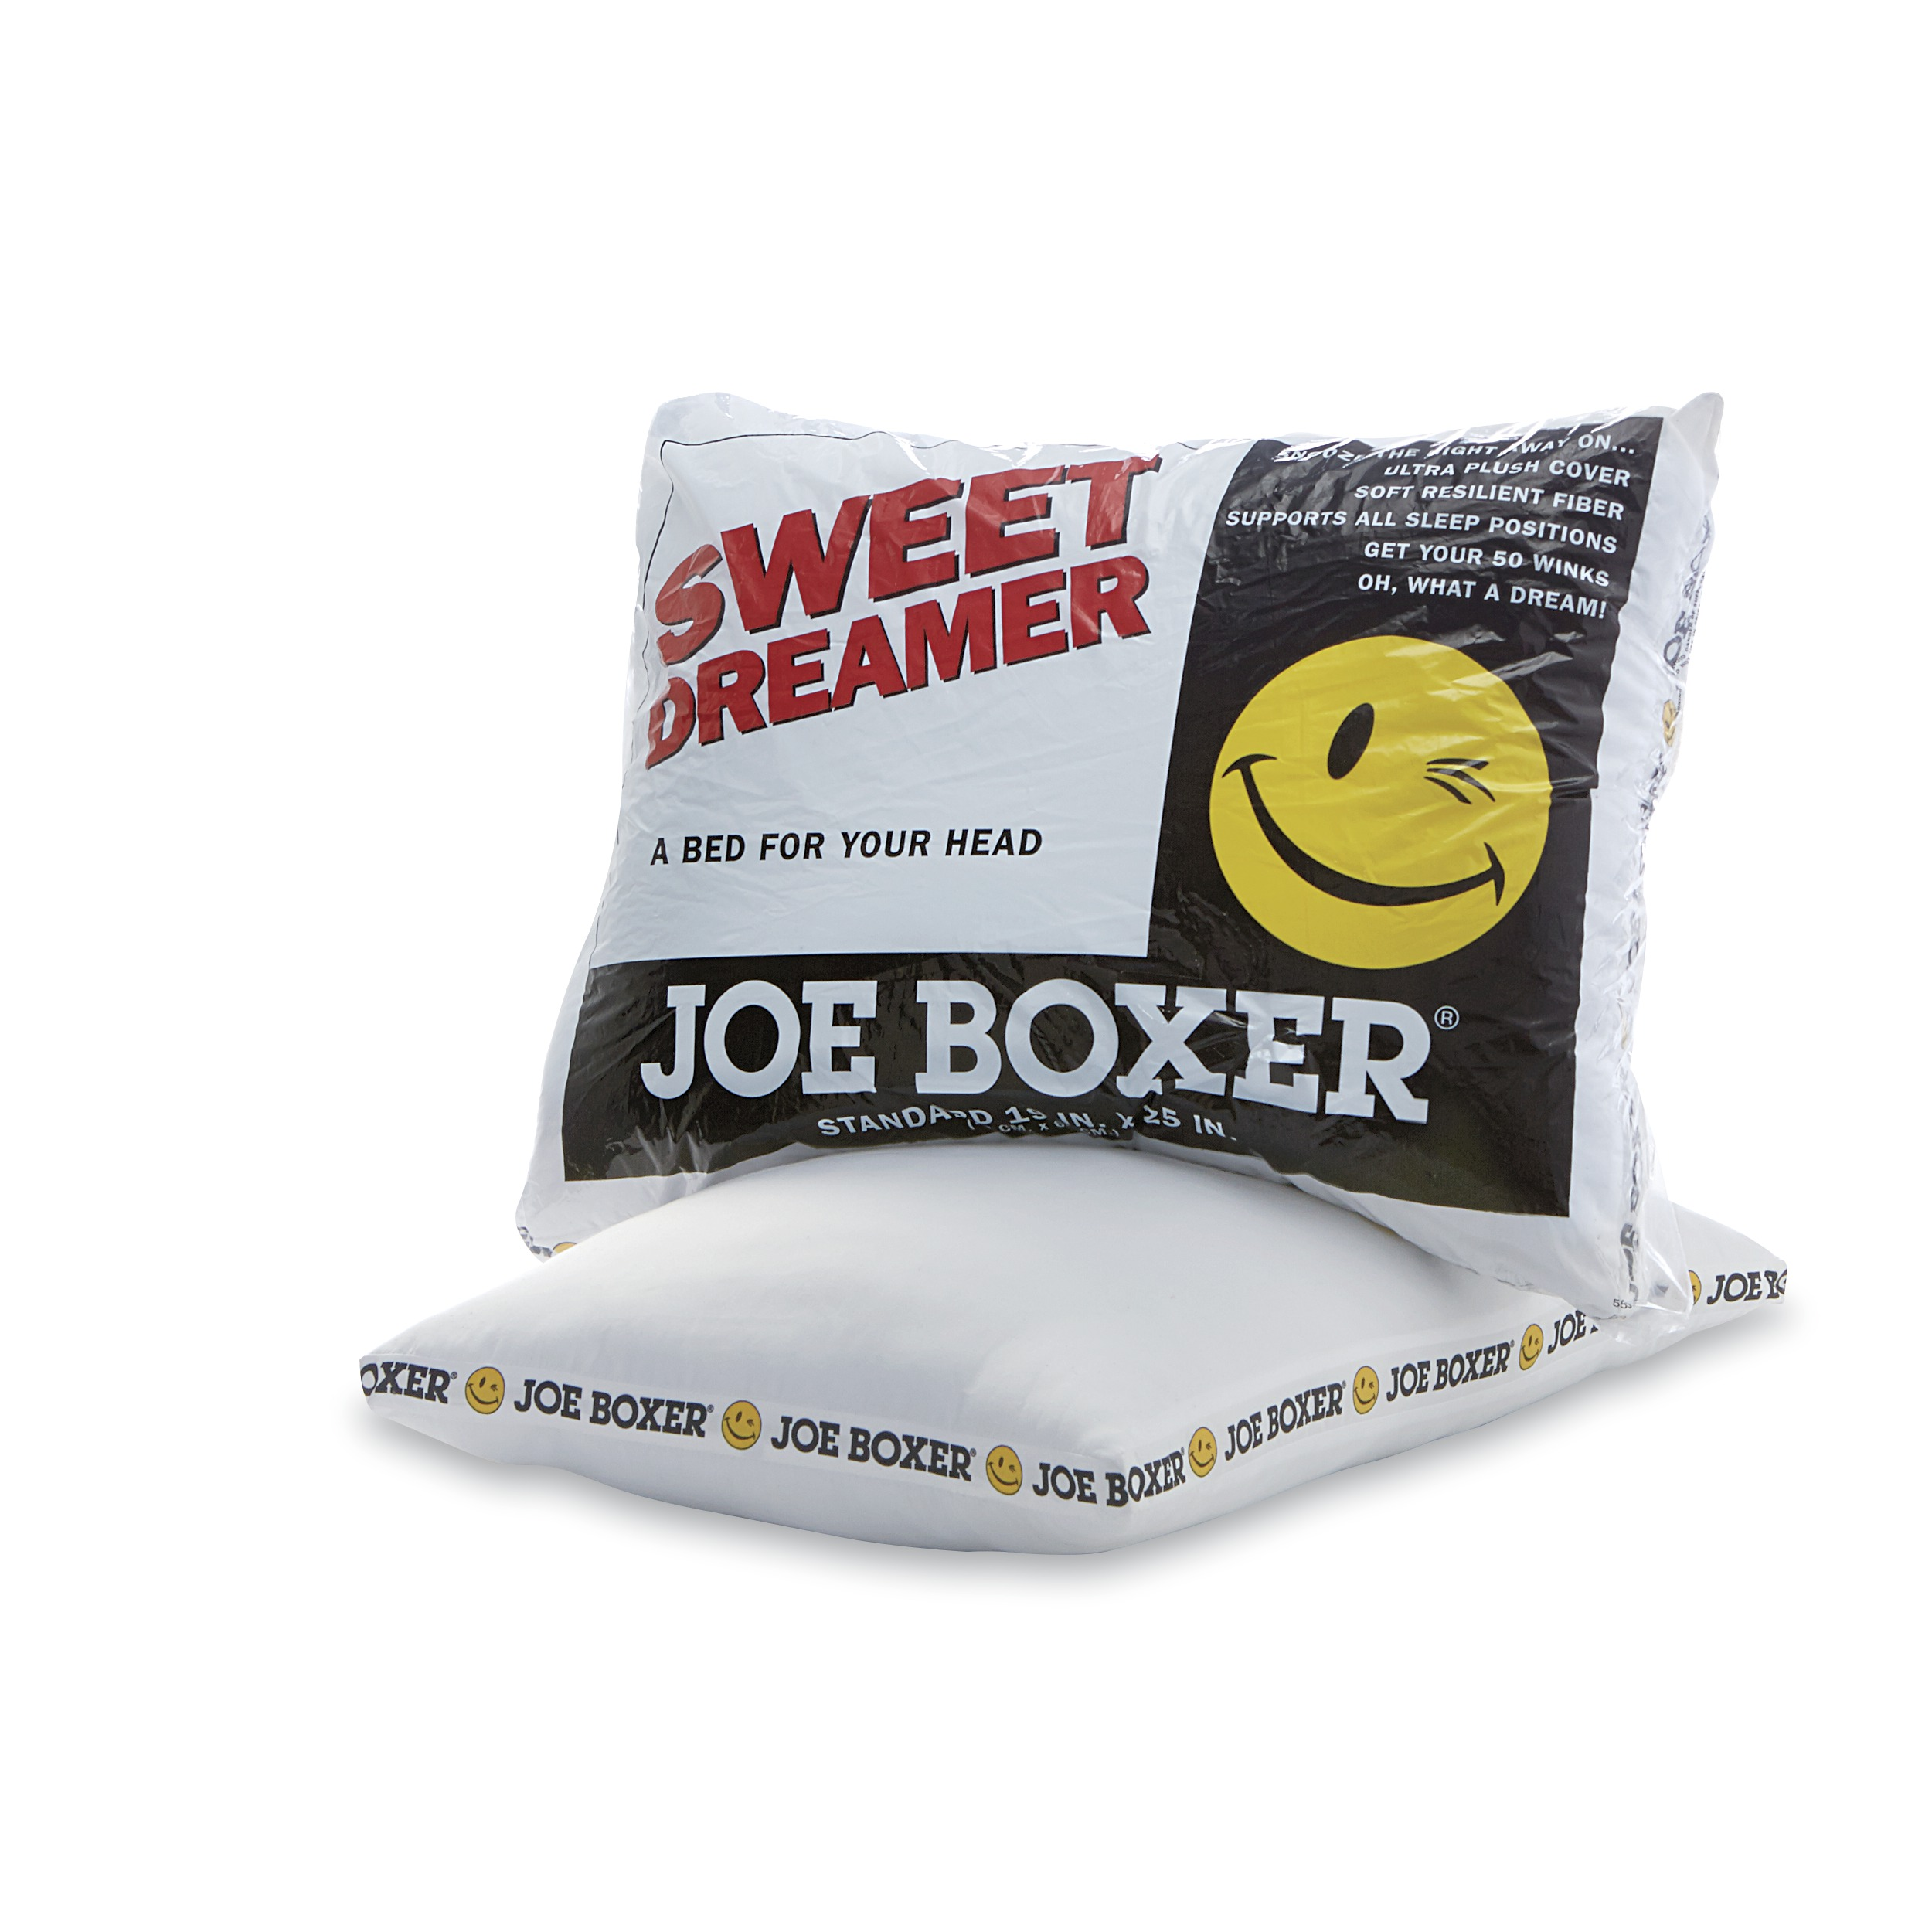 Standard Bed Pillows Joe Boxer Sweet Dreamer Ultra Plush Standard Bed Pillow